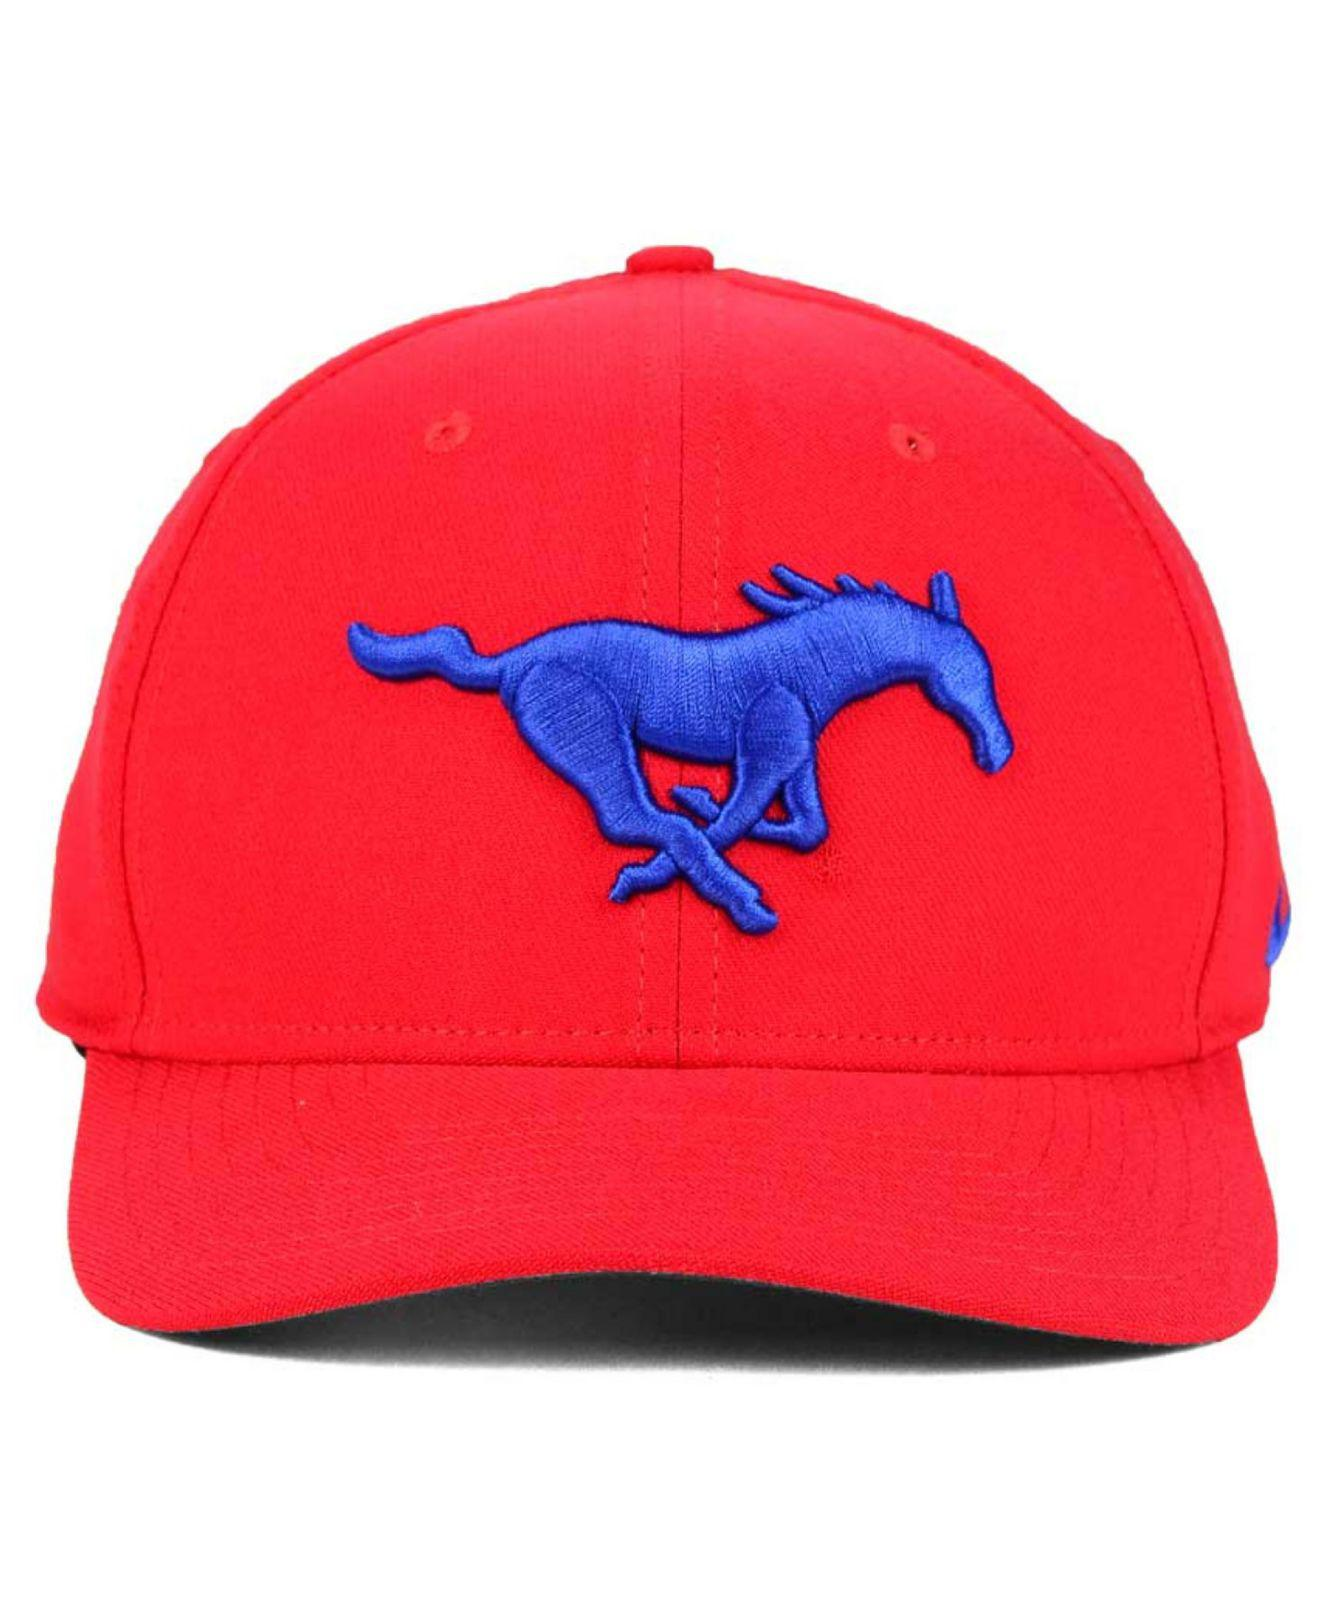 fe8cef0c17e ... discount code for lyst nike southern methodist mustangs classic swoosh  cap in red for men 57423